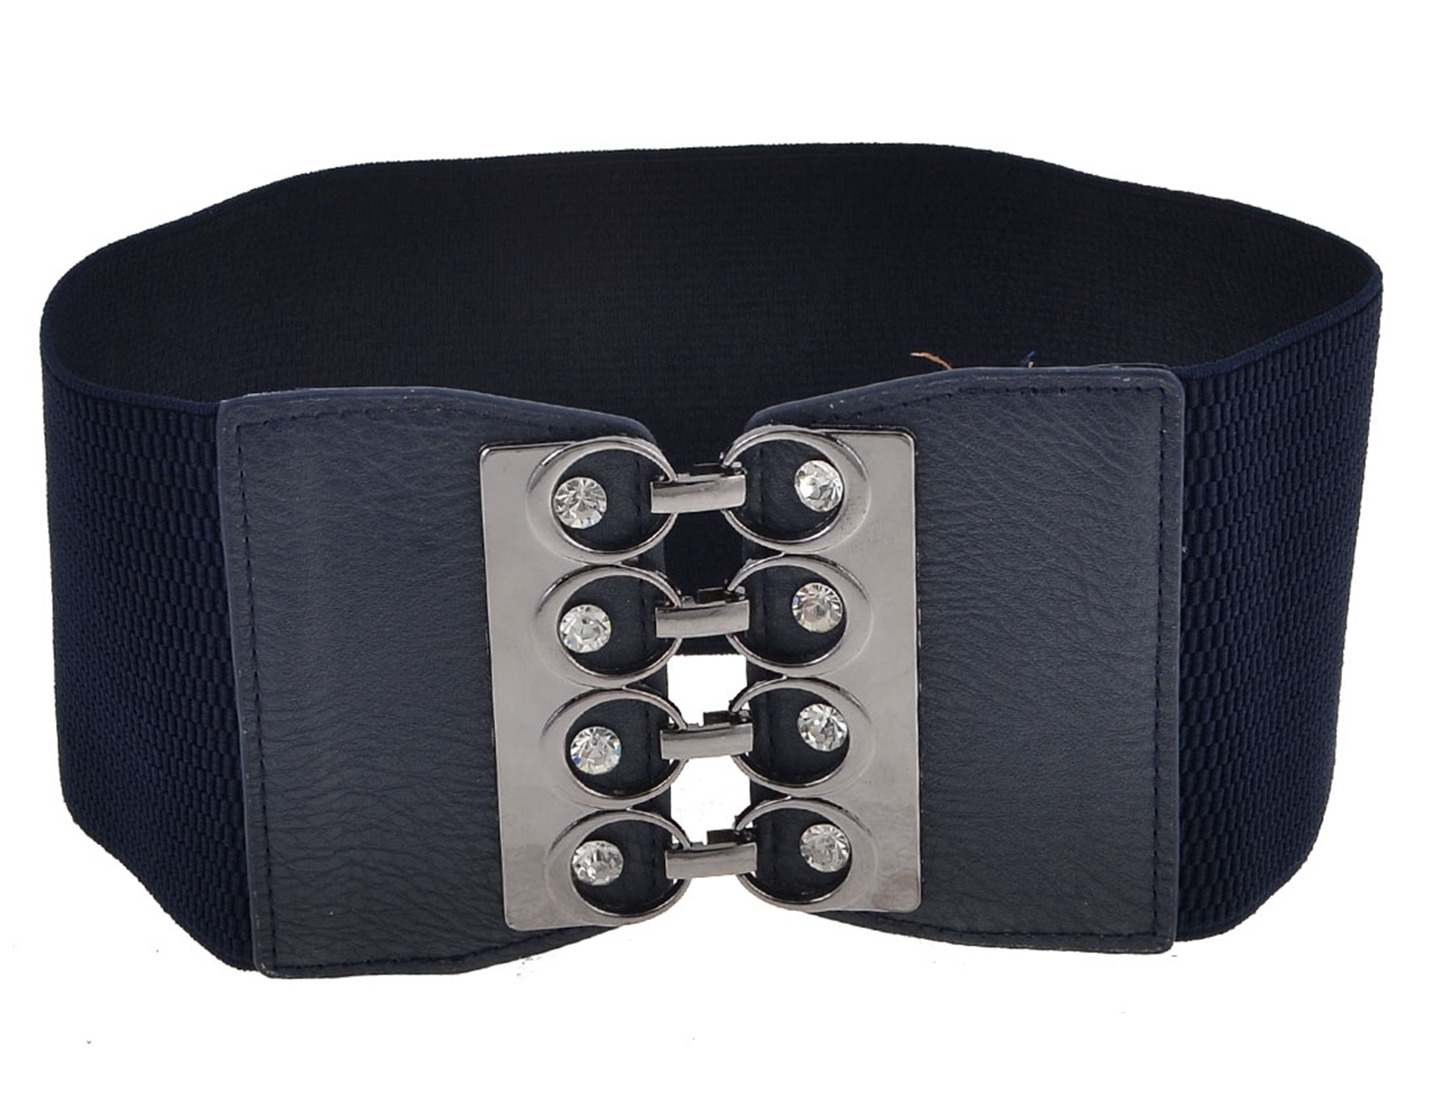 Faux Leather Buckle Part 10cm Wide Navy Blue Textured Band Cinch Belt for Women